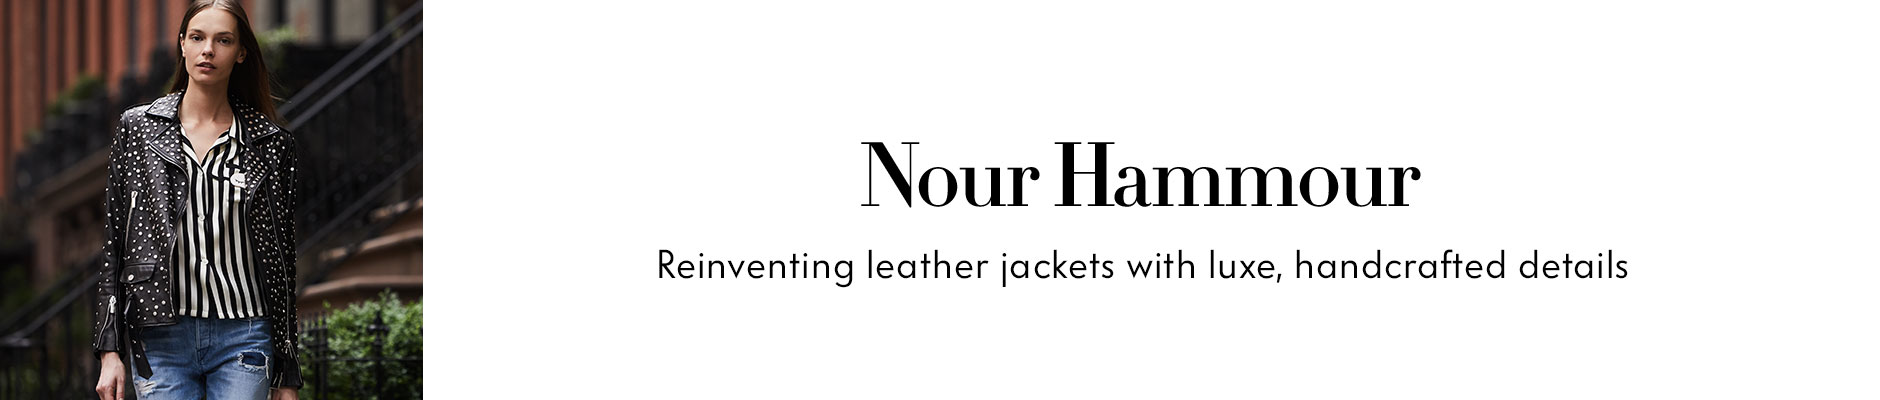 Nour Hammour - Reinventing leather jackets with luxe, handcrafted details